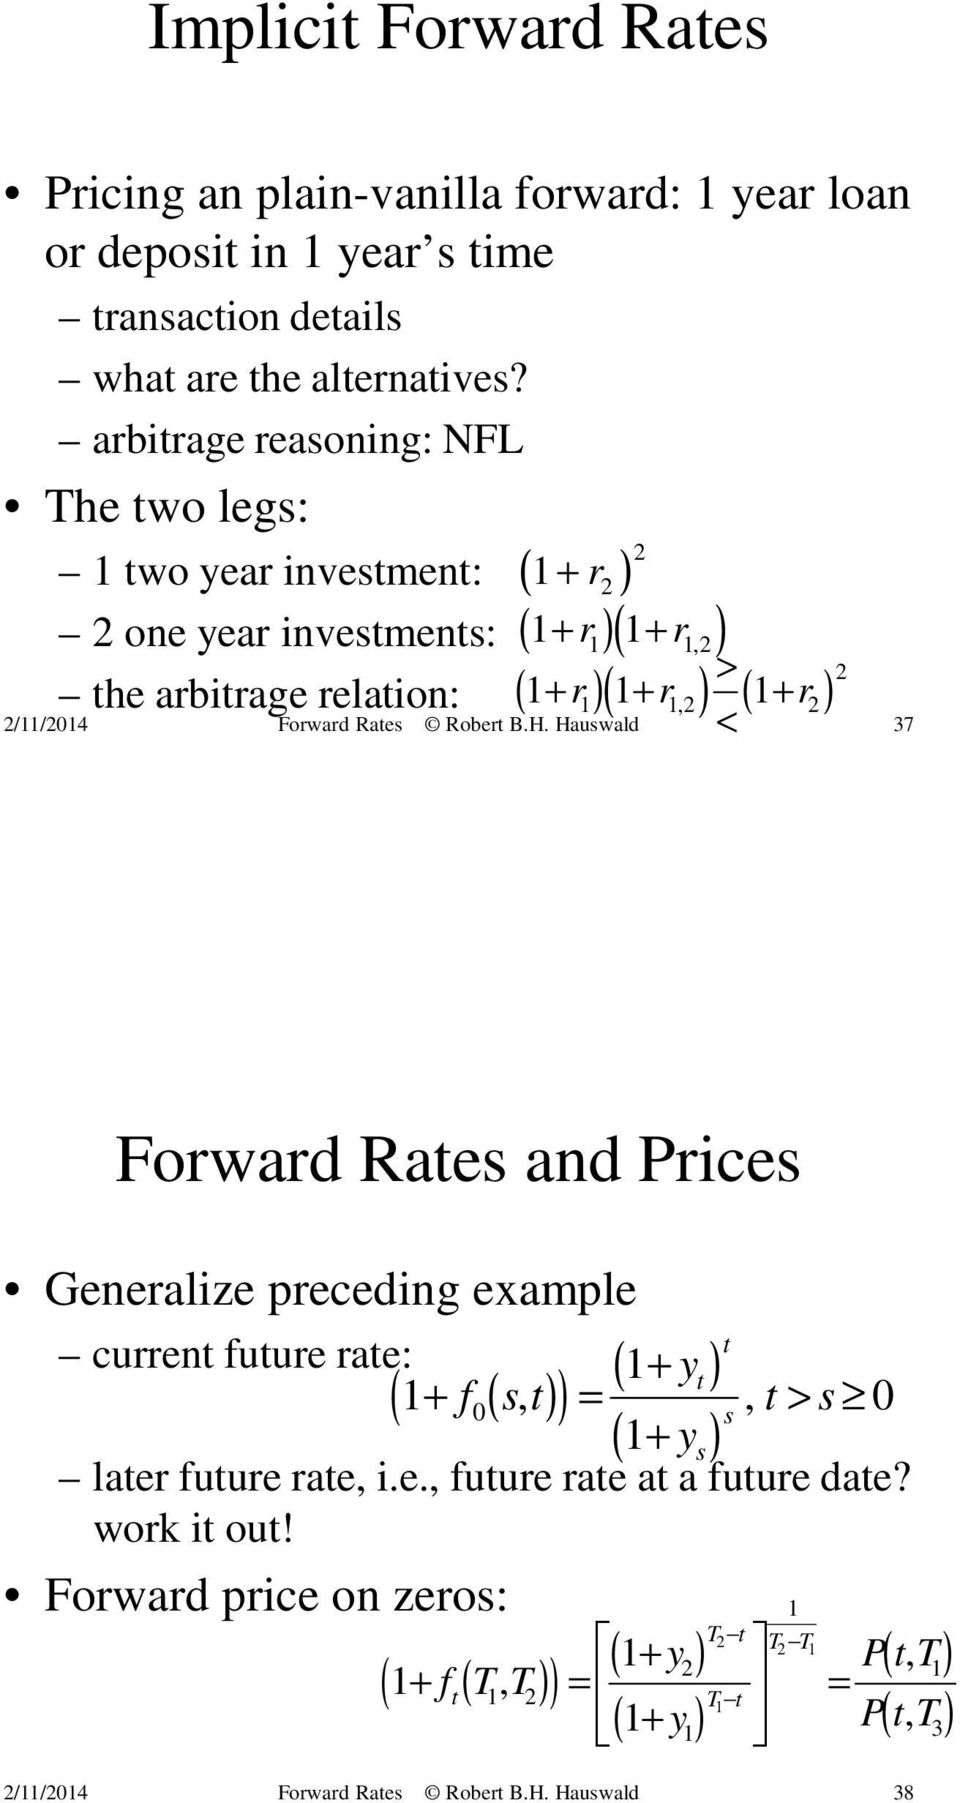 ) ( 1 r ) 2 1 1, 2 2 37 < + Forward Rates and Prices Generalize preceding example current future rate: 1 ( 1+ 0( )) = + t yt f s, t, t > s 0 s ( 1+ ys) later